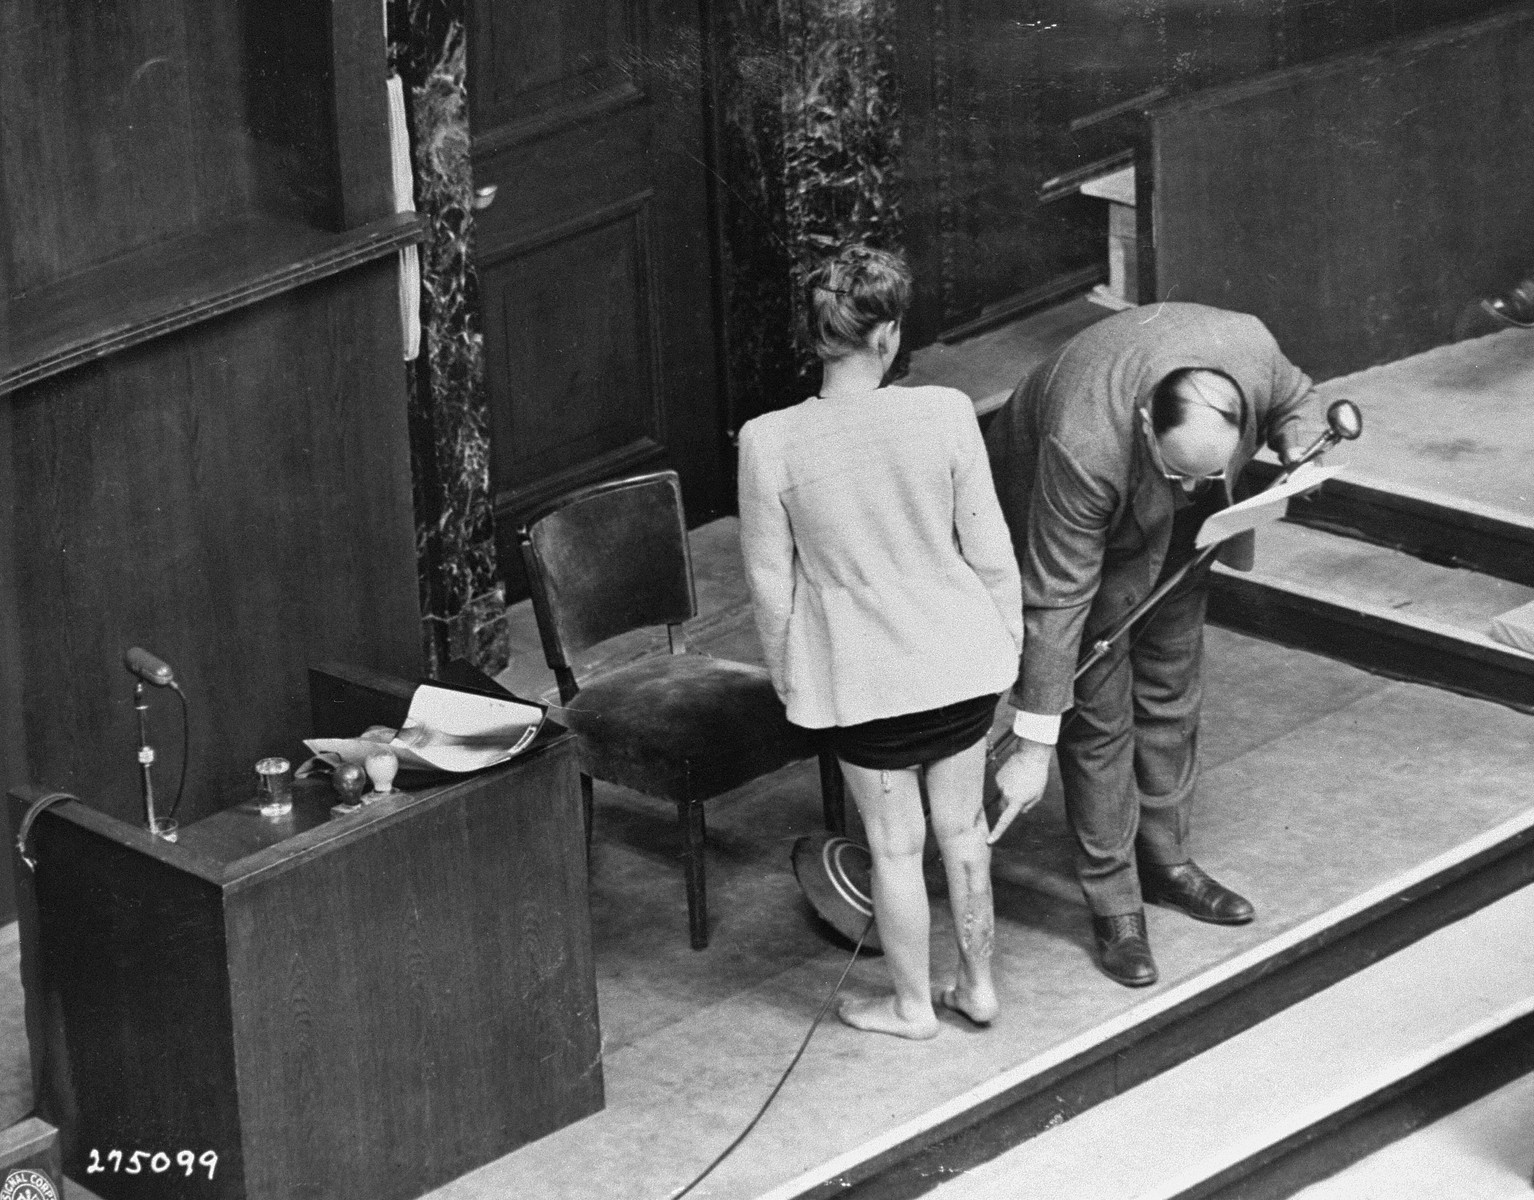 Polish survivor Jadwiga Dzido shows her scarred leg to the court, while expert witness Dr. Alexander explains the nature of the medical experiment performed on her in the Ravensbrueck concentration camp.  Dzido and Alexander were appearing as witnesses at the Doctors Trial.  The experiments were performed by defendants Herta Oberheuser and Fritz Ernst Fischer, on November 22, 1942.